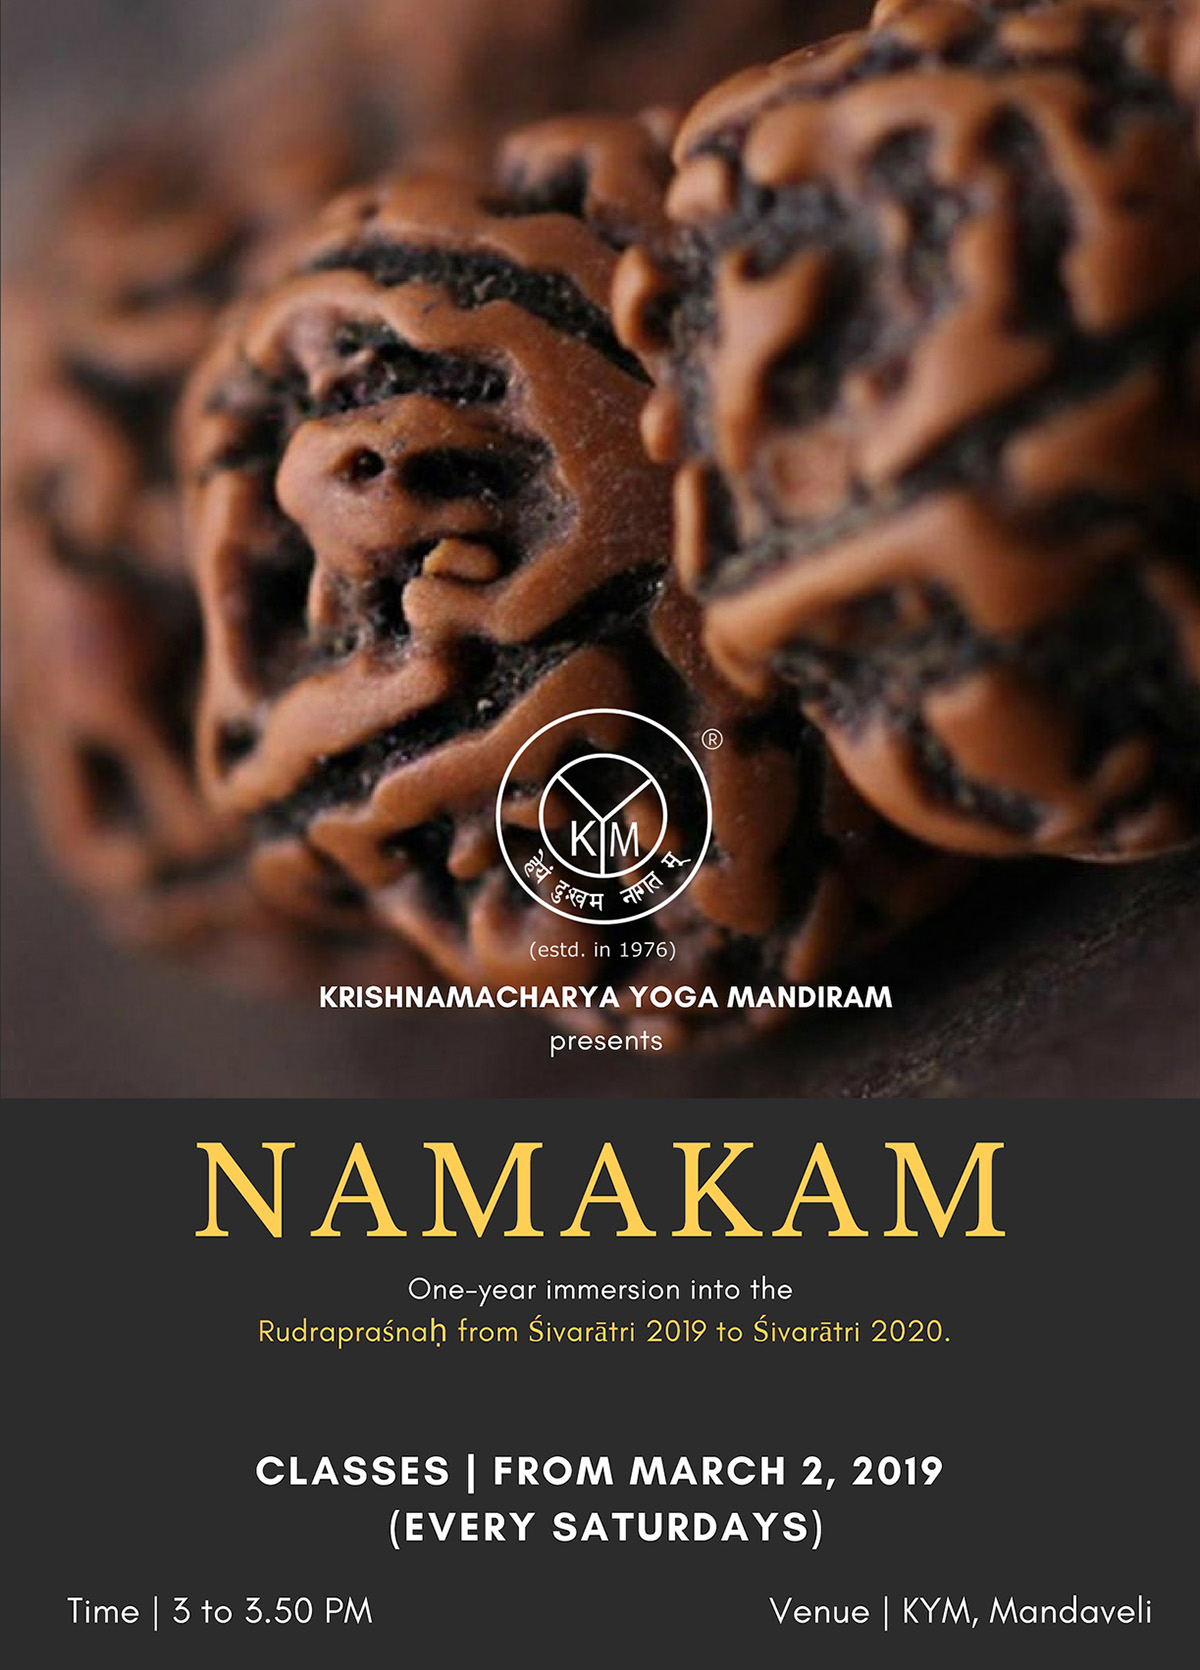 Namakam – An Immersion